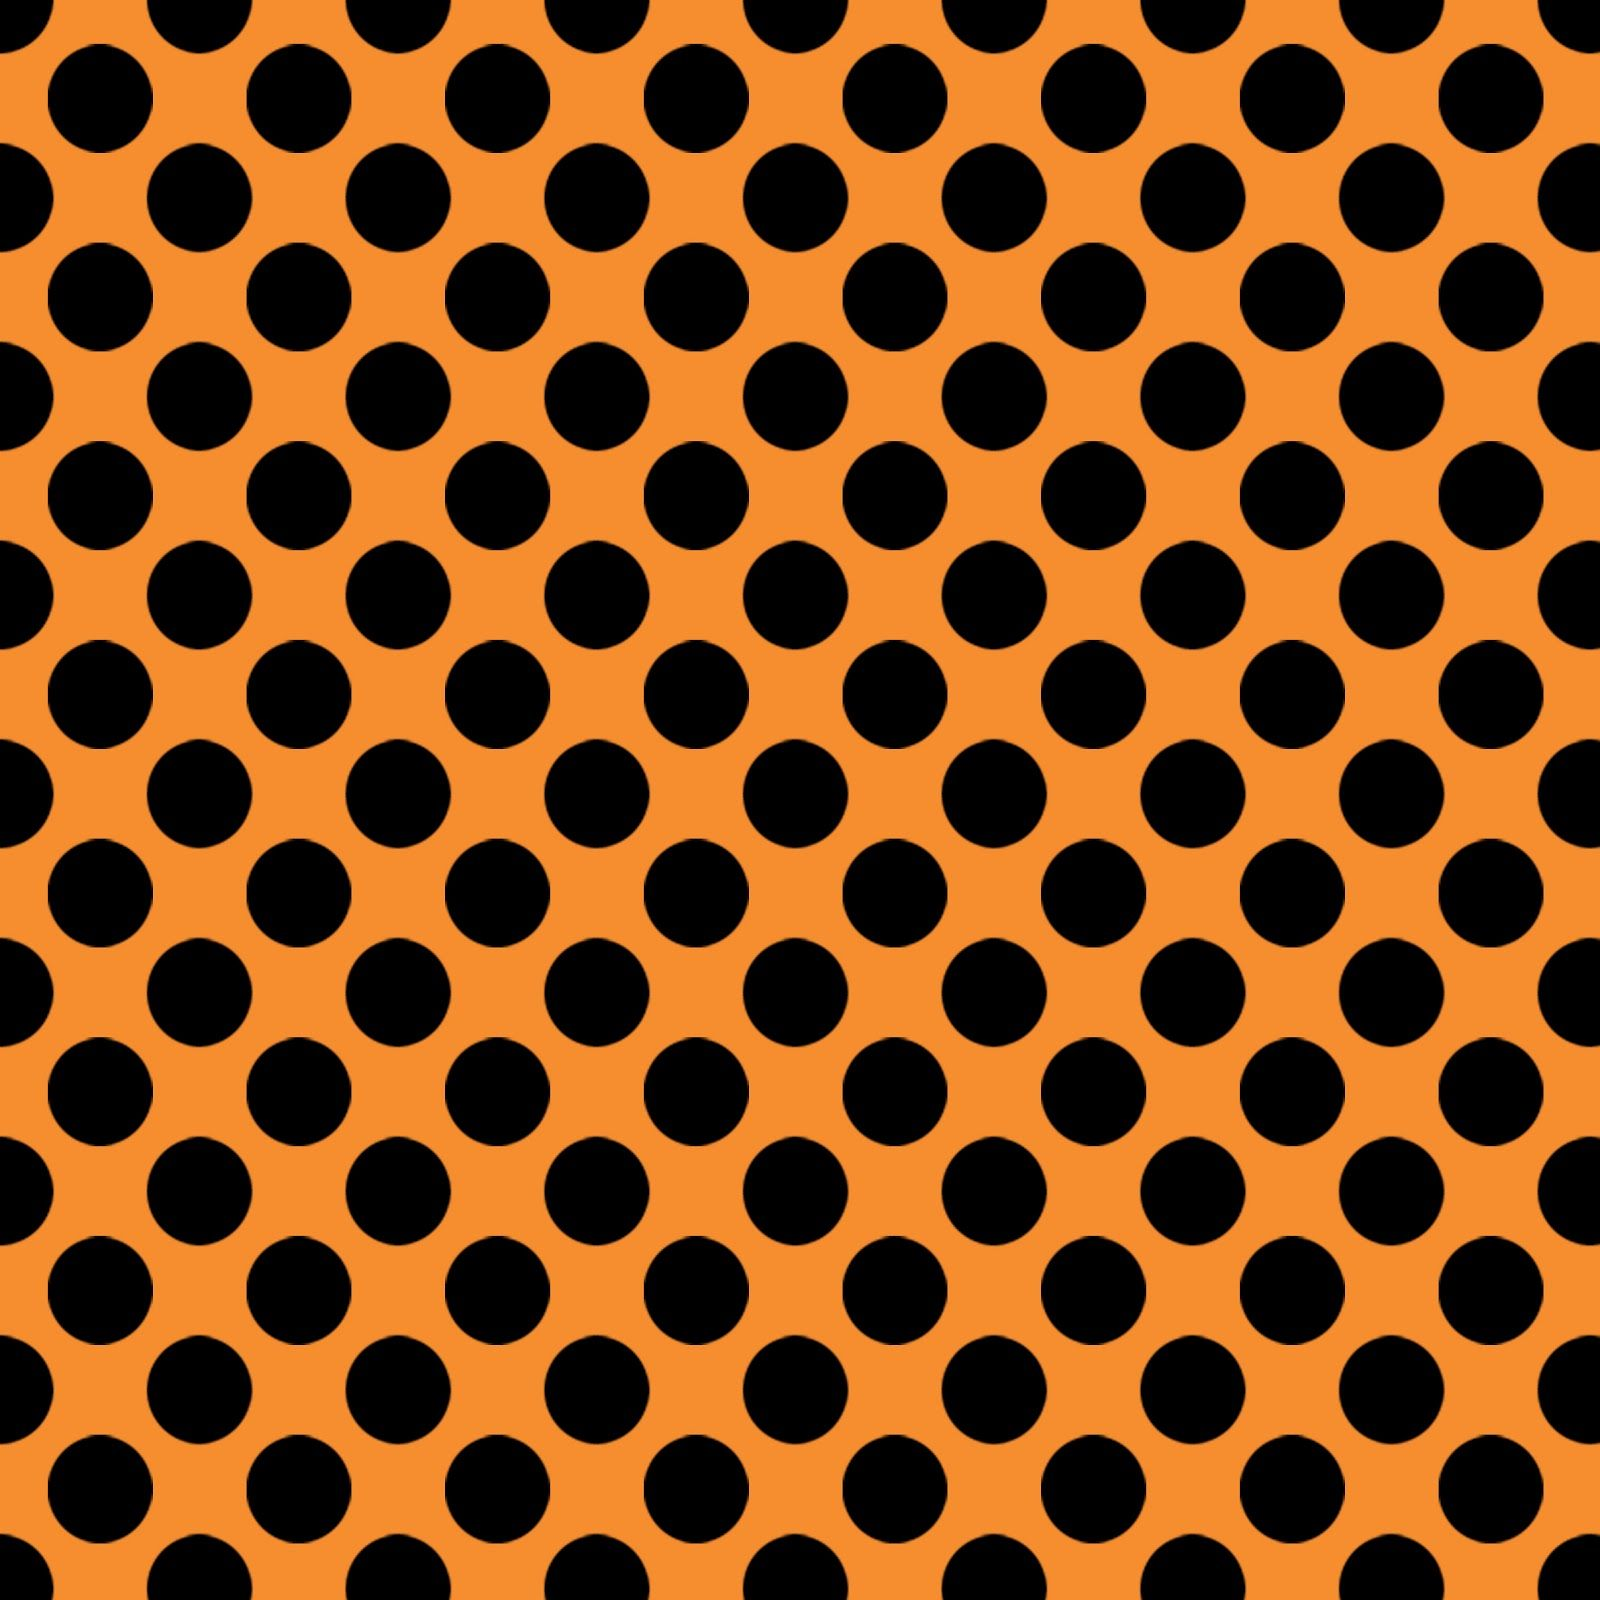 Scrapbook ideas black background - Free Digital Scrapbook Paper Thank You For The Special Request From A Fabulous Fan Orange Black Polka Dots Perfect For Halloween Background Paper